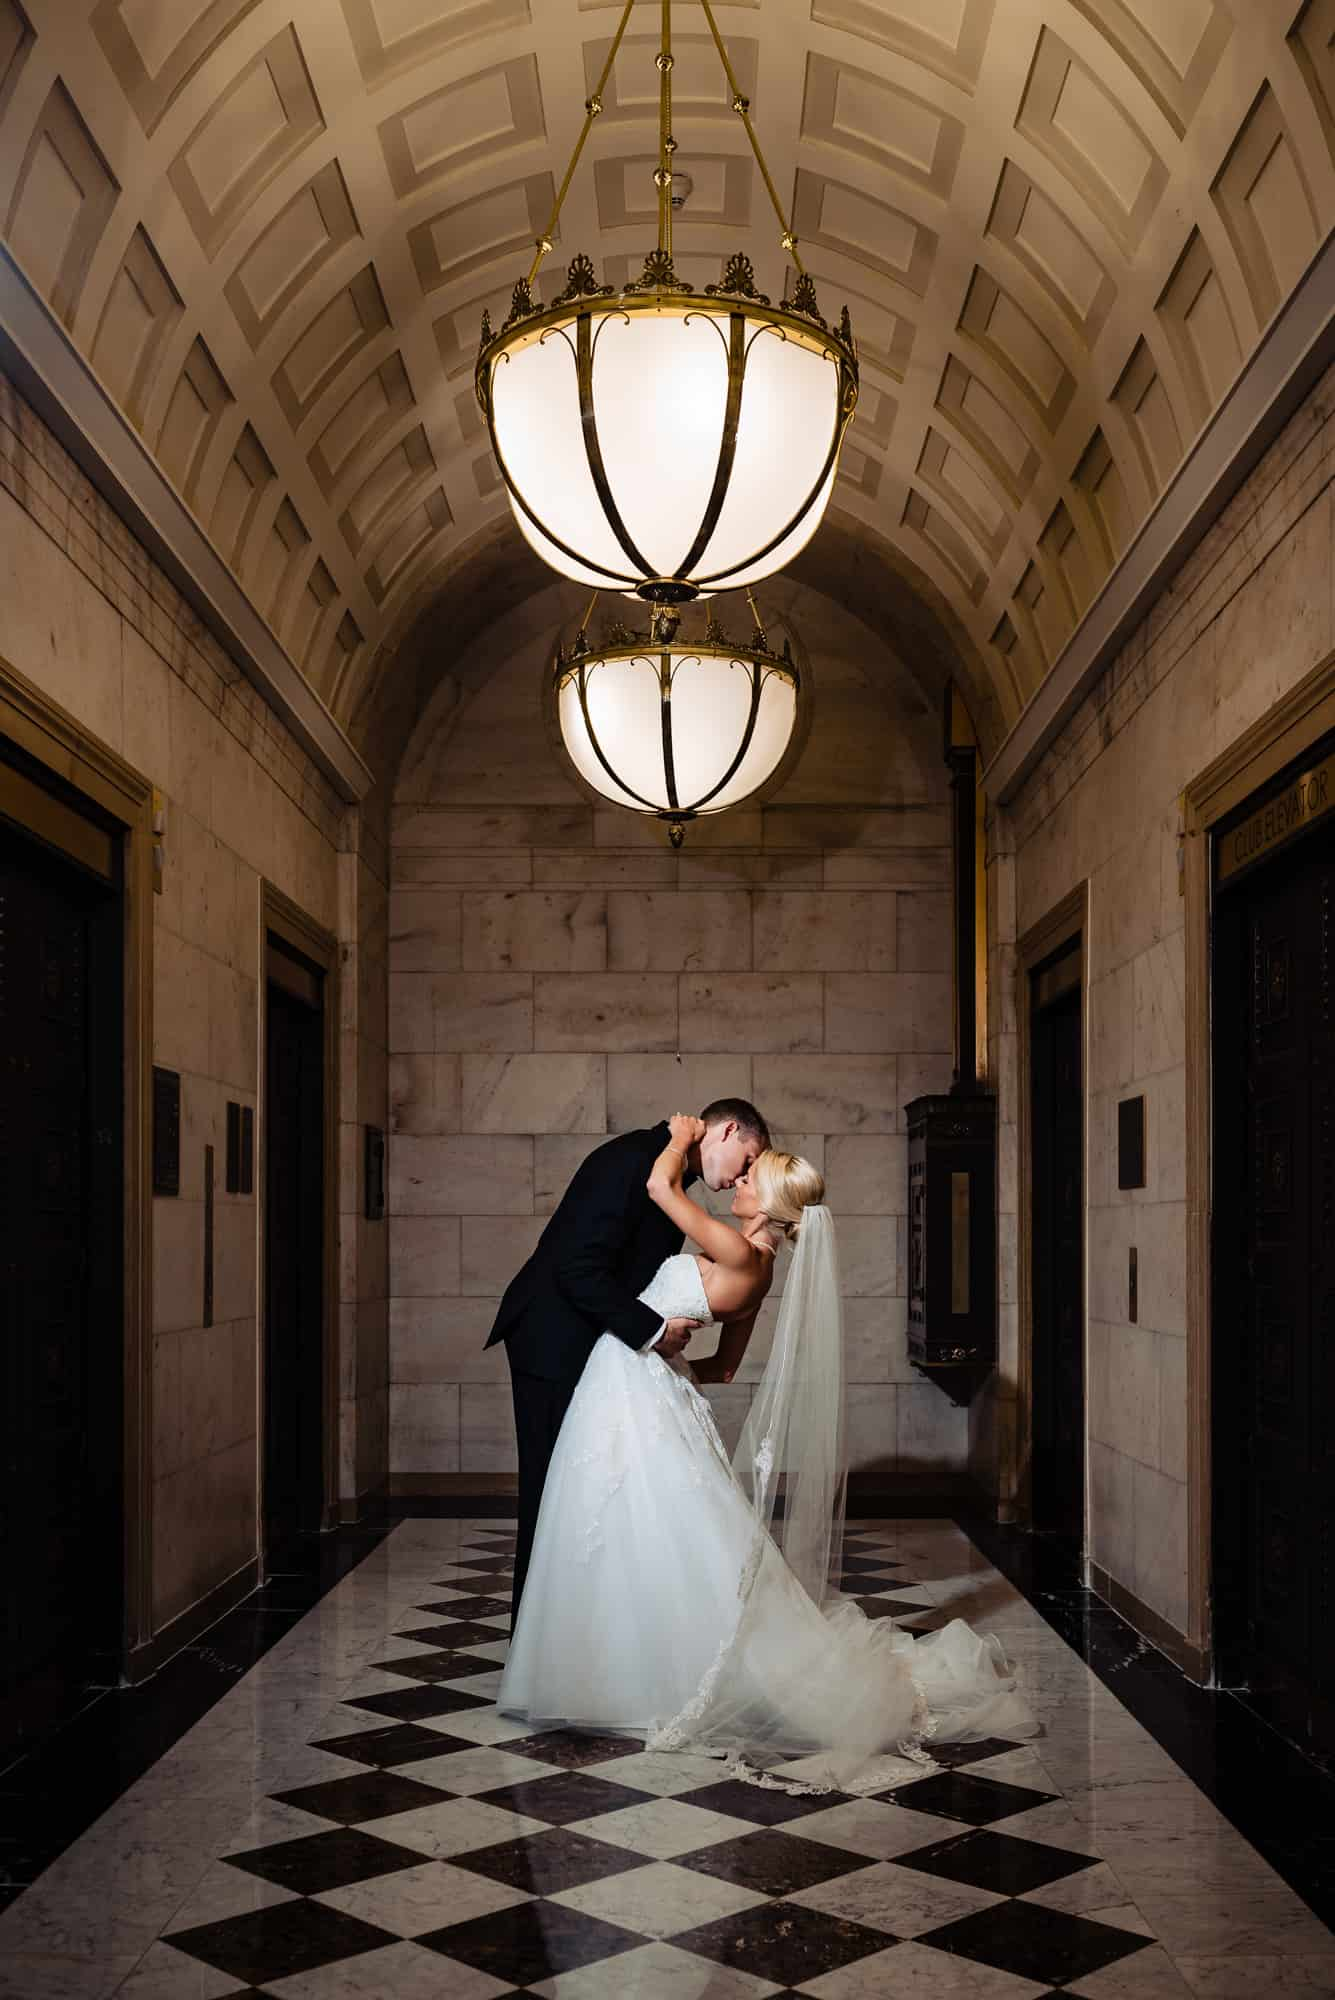 Ritz Carlton Philadelphia Wedding|romantic photo of bride and groom in hotel walkway